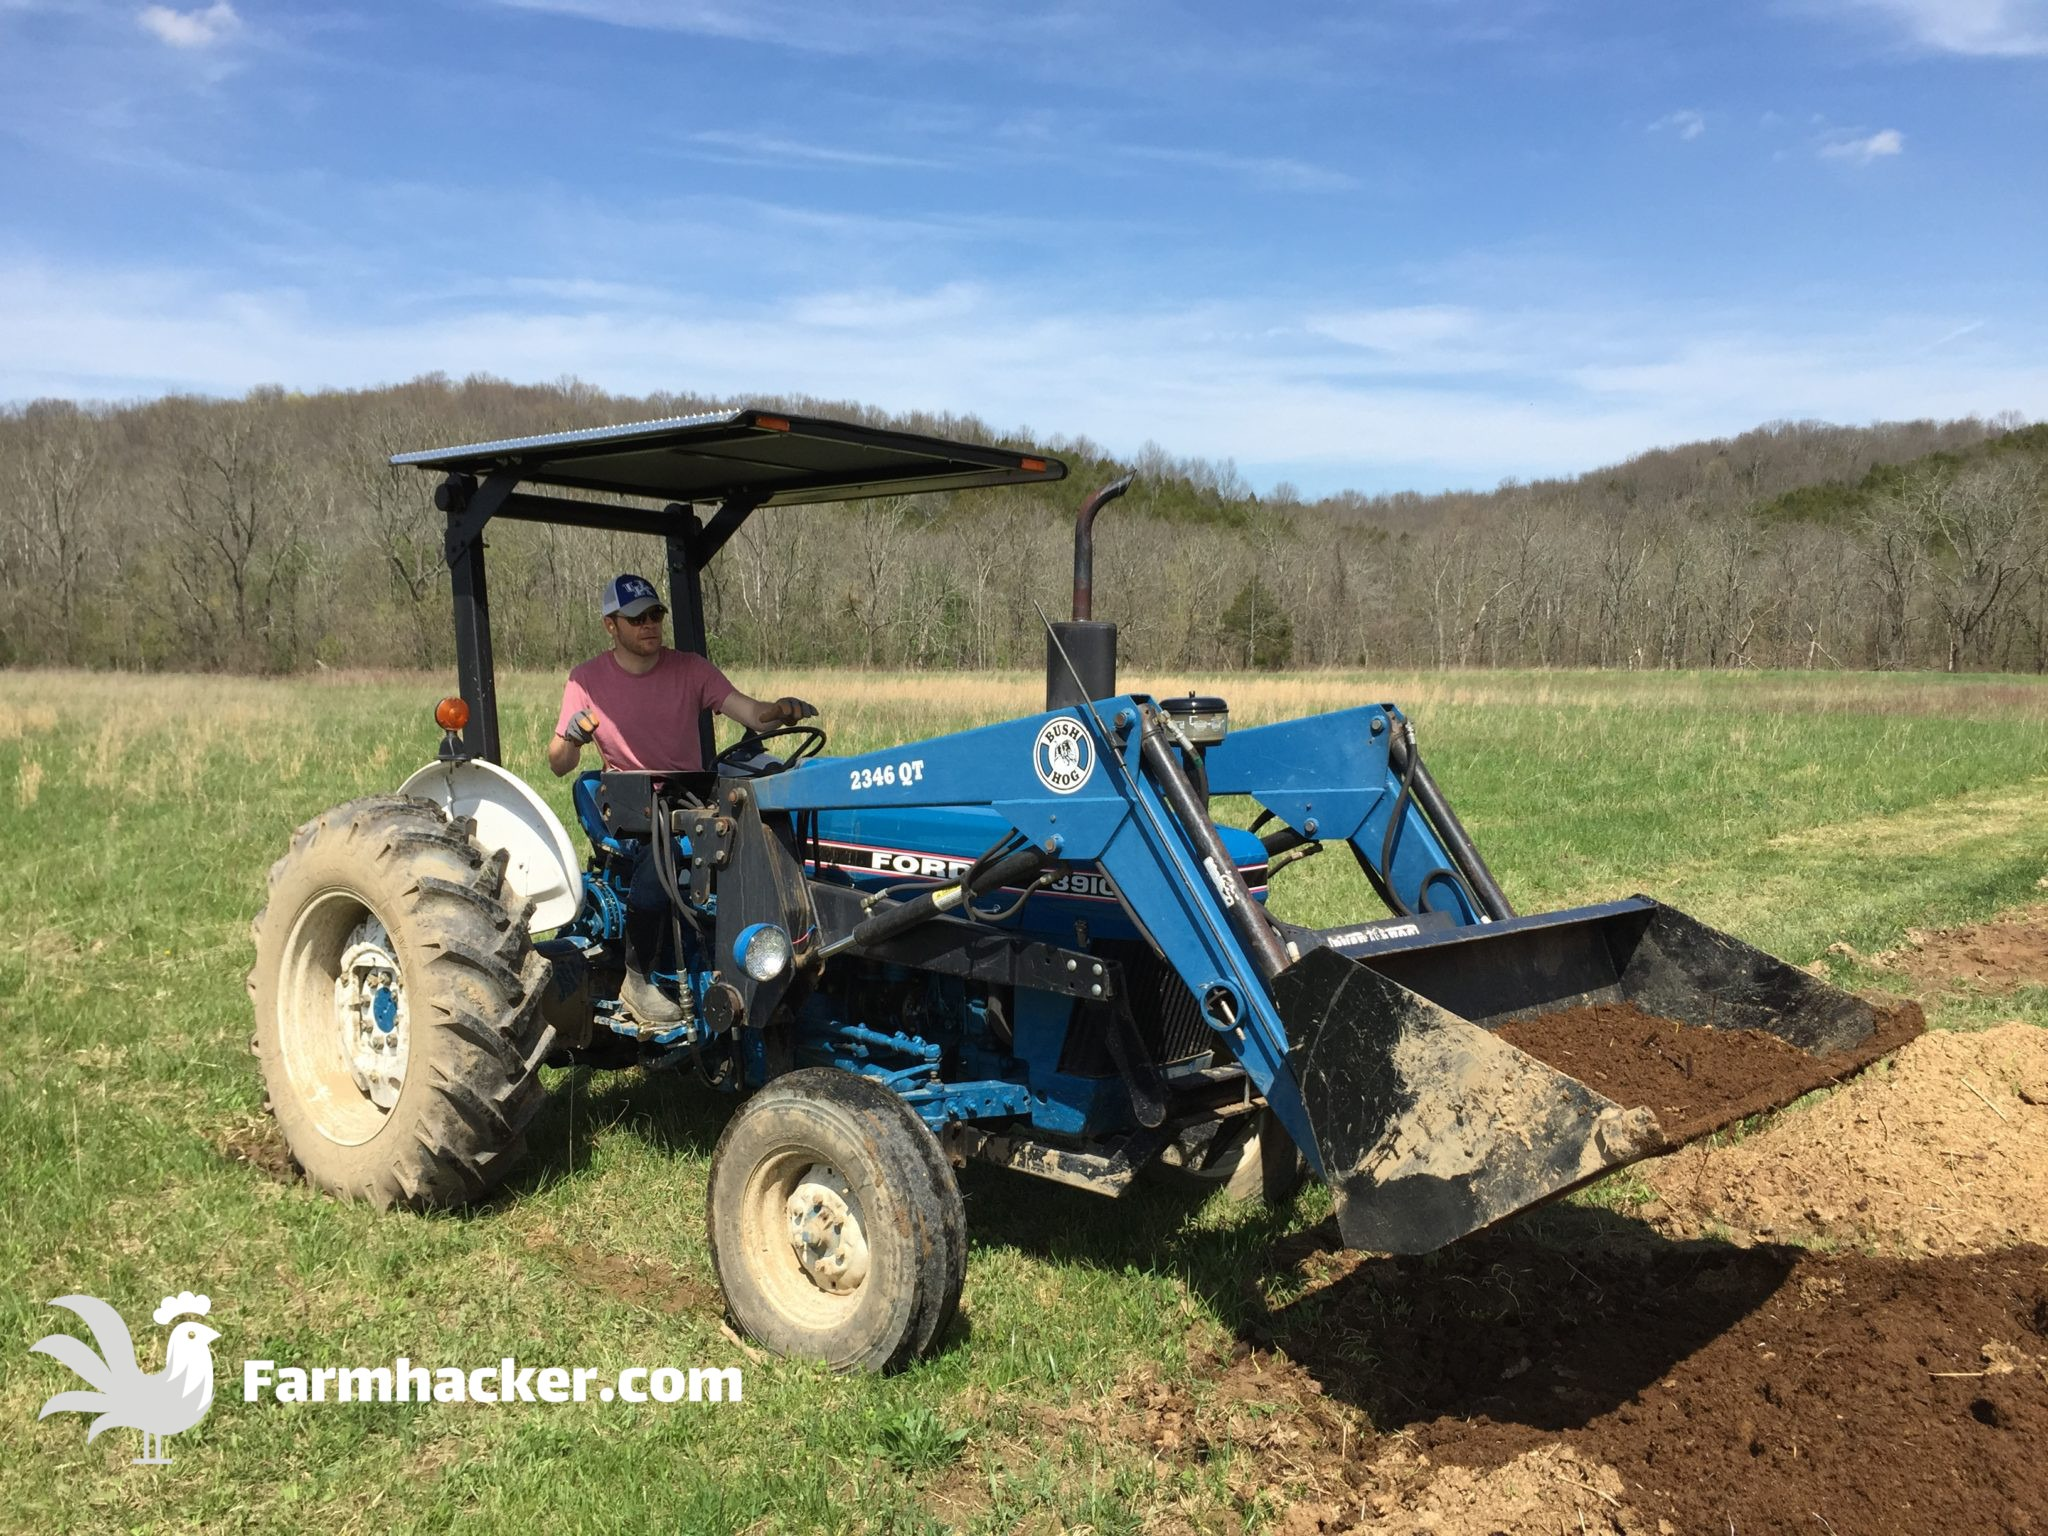 Casey on the Tractor - How to Start a Farm Farming Guide